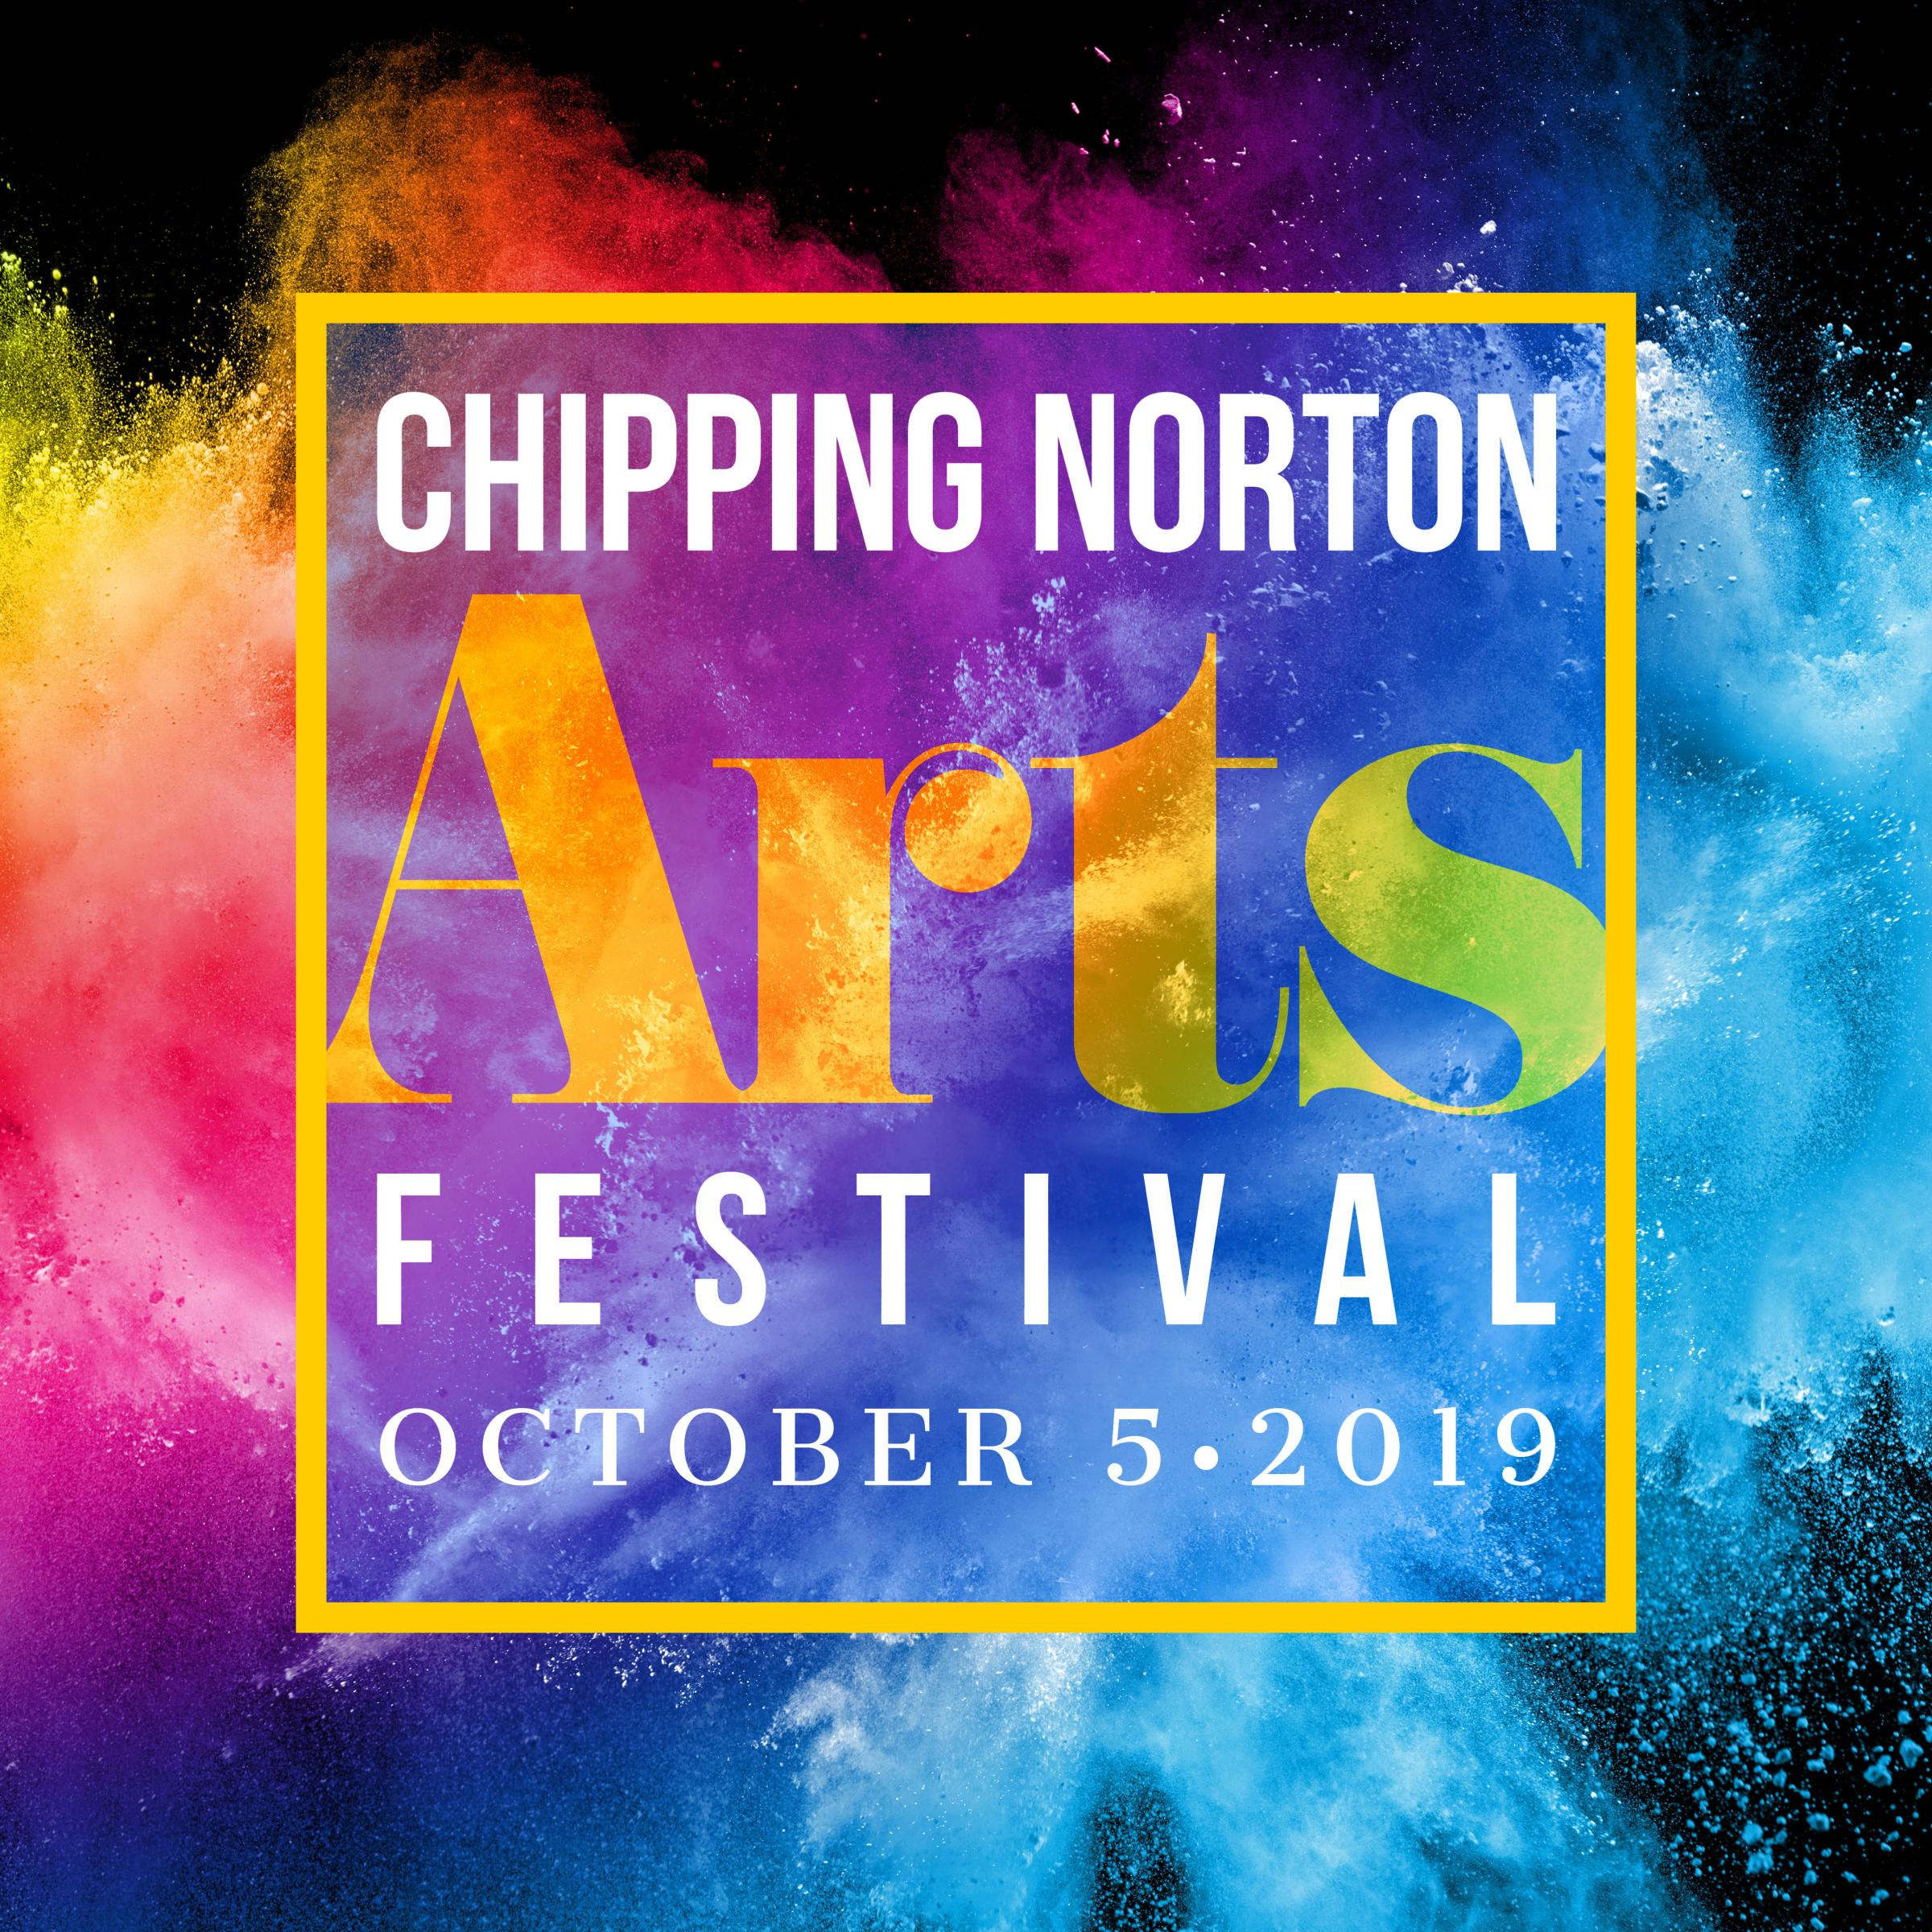 Chipping Norton Arts Festival